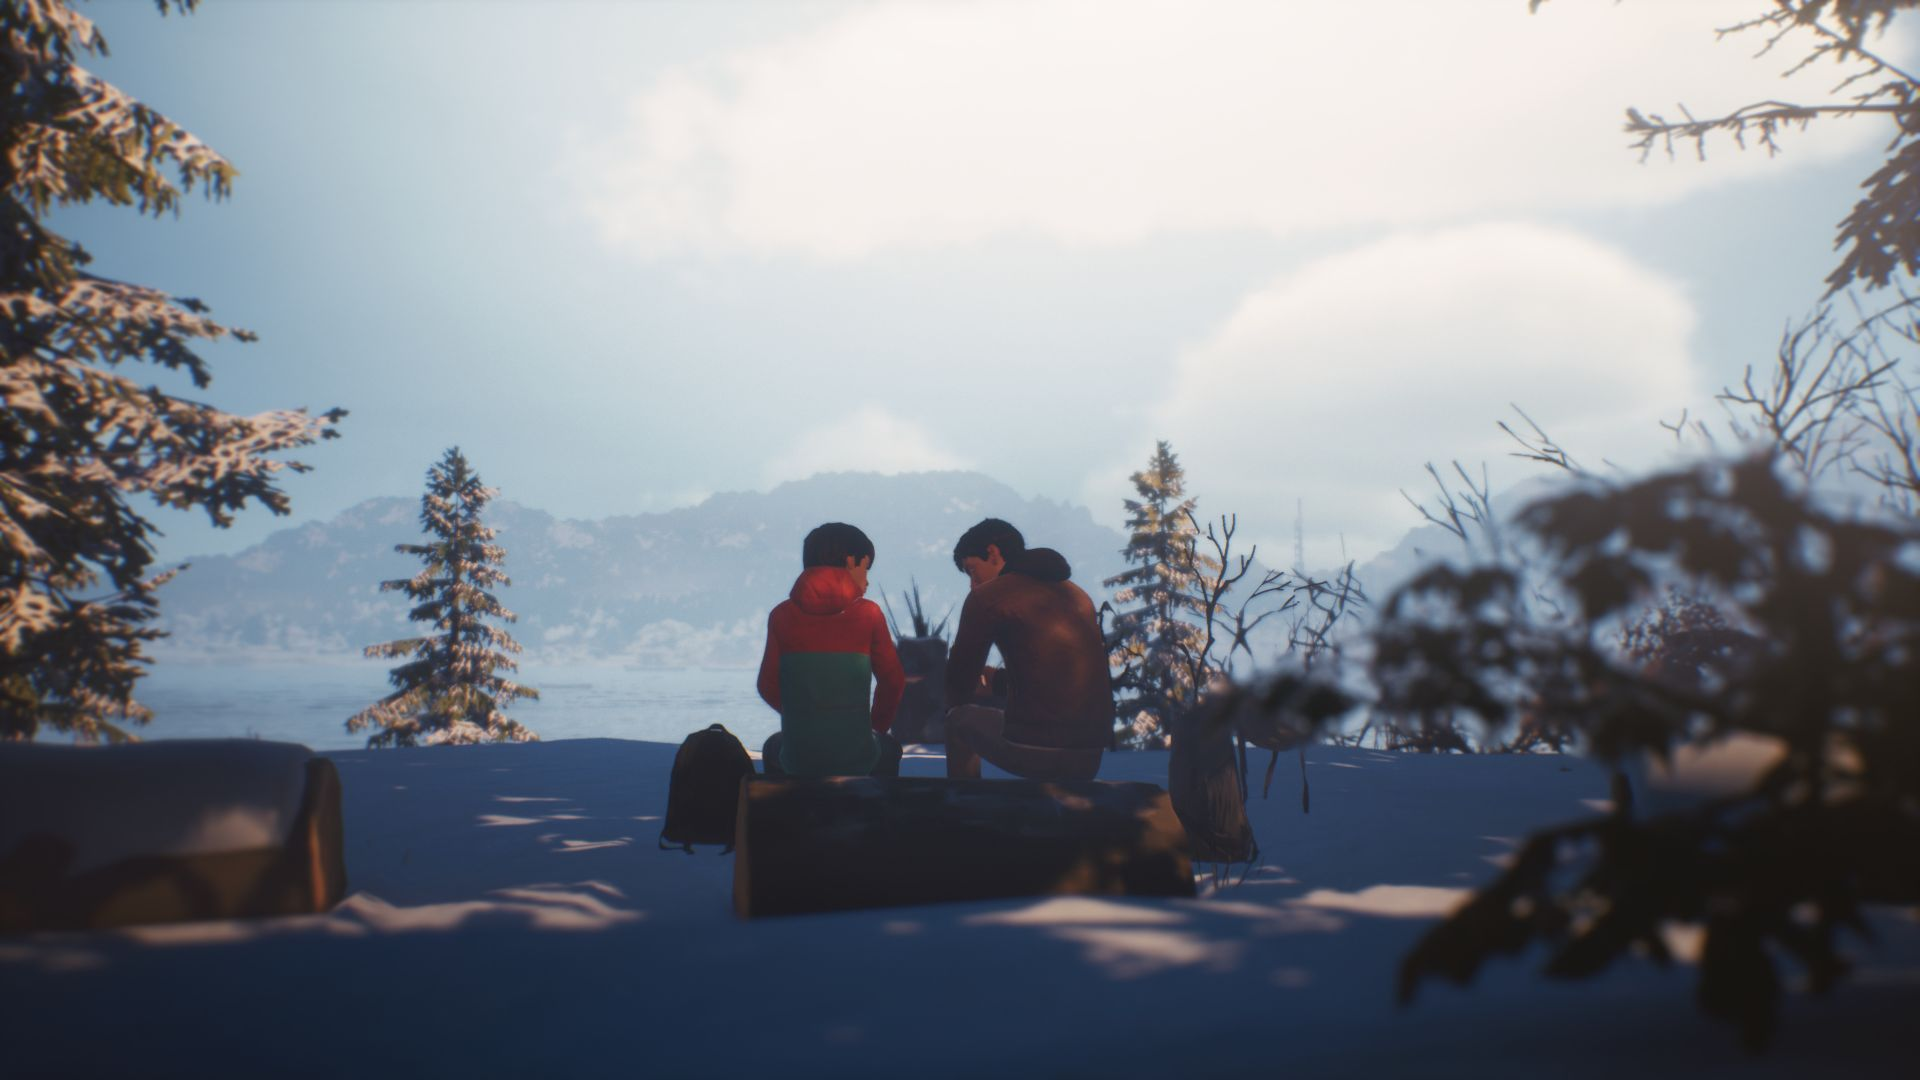 Feb 5 2019 Life Is Strange 2 Episode 2 Verdict O Chat Life Is